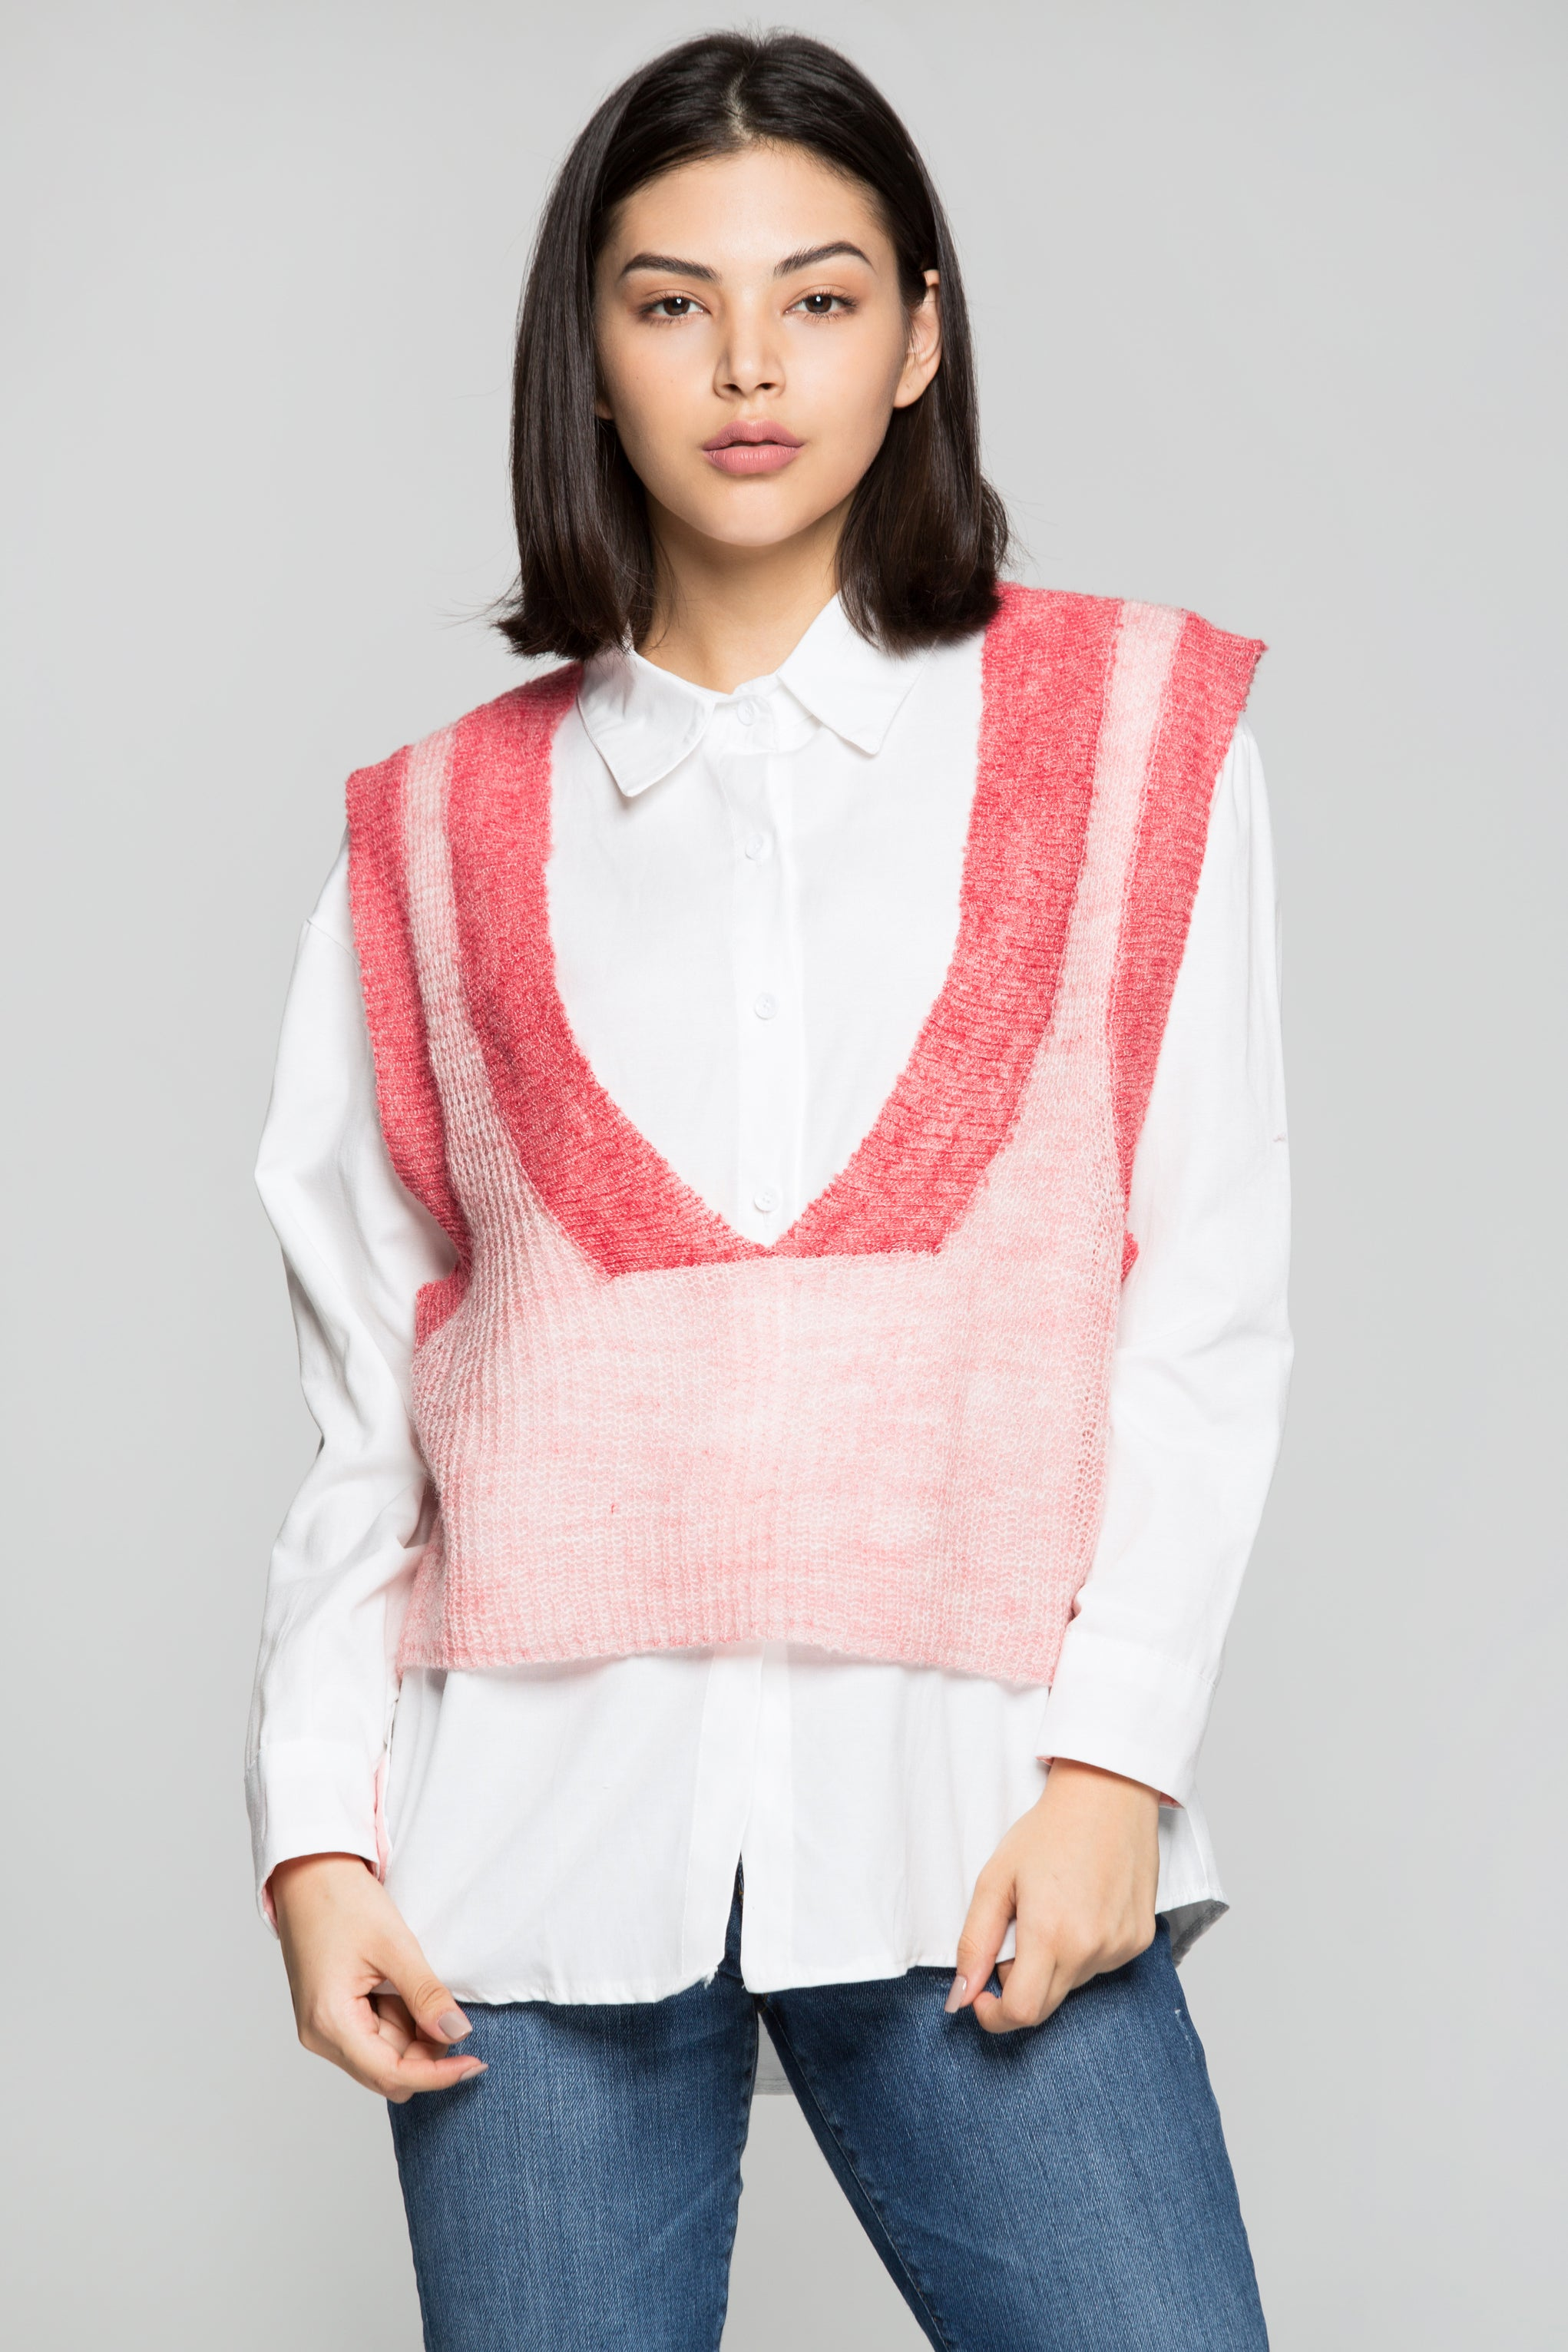 Pink Sweater Vest Over White Shirt